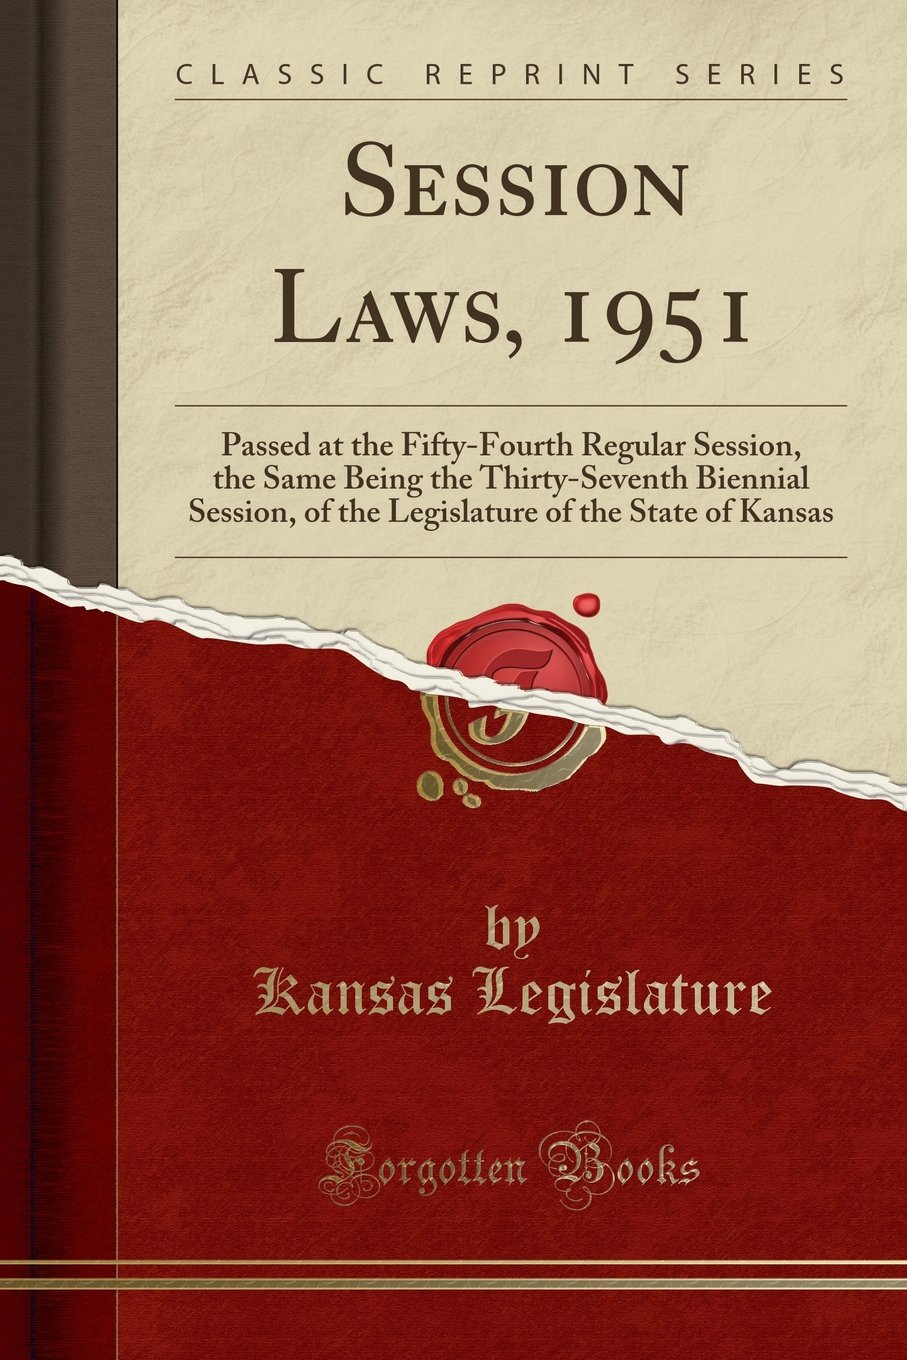 Download Session Laws, 1951: Passed at the Fifty-Fourth Regular Session, the Same Being the Thirty-Seventh Biennial Session, of the Legislature of the State of Kansas (Classic Reprint) ebook